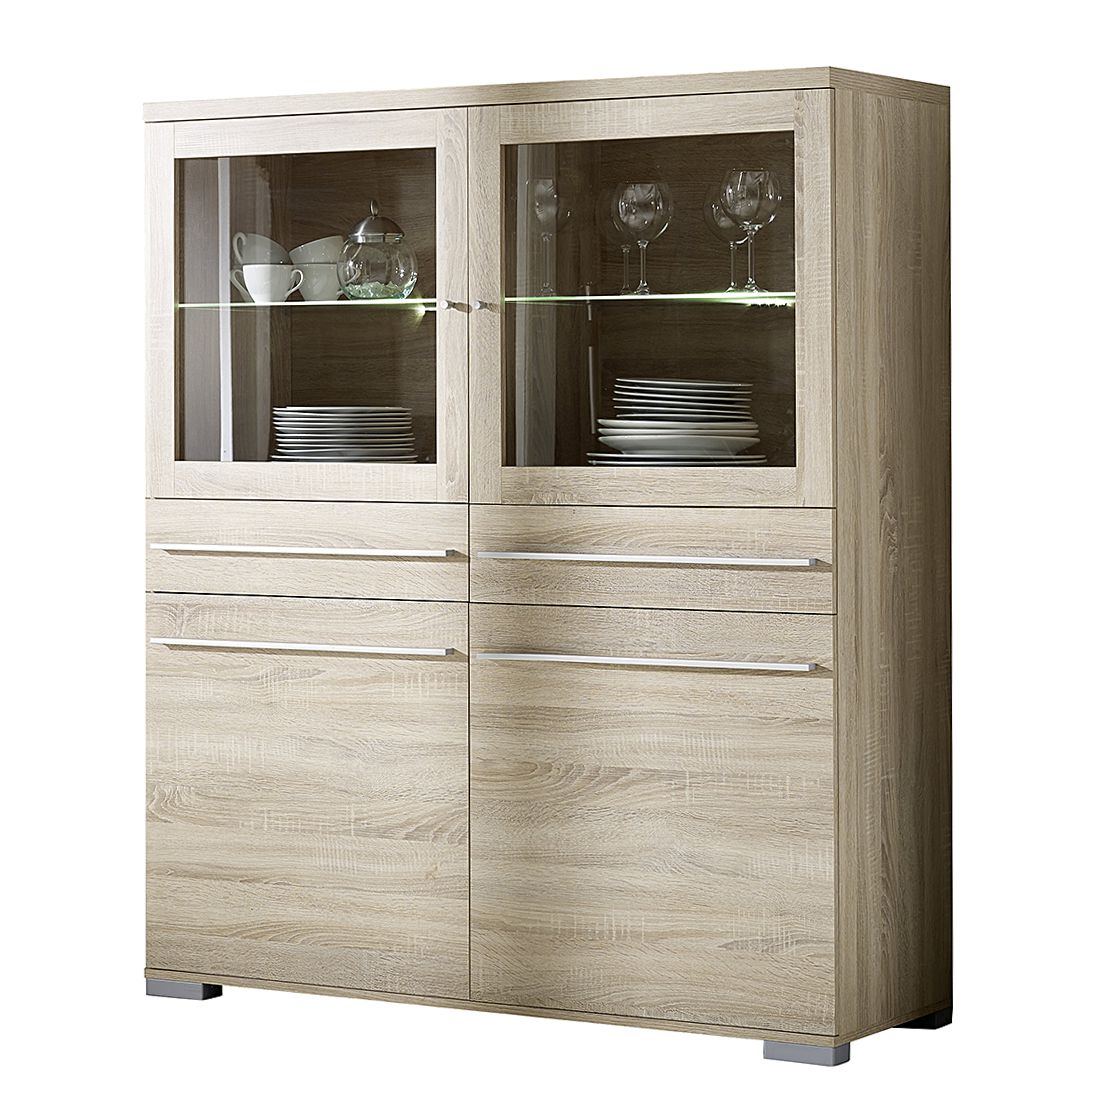 highboard tournai eiche s gerau dekor highboard tournai eiche s gerau dekor mit. Black Bedroom Furniture Sets. Home Design Ideas